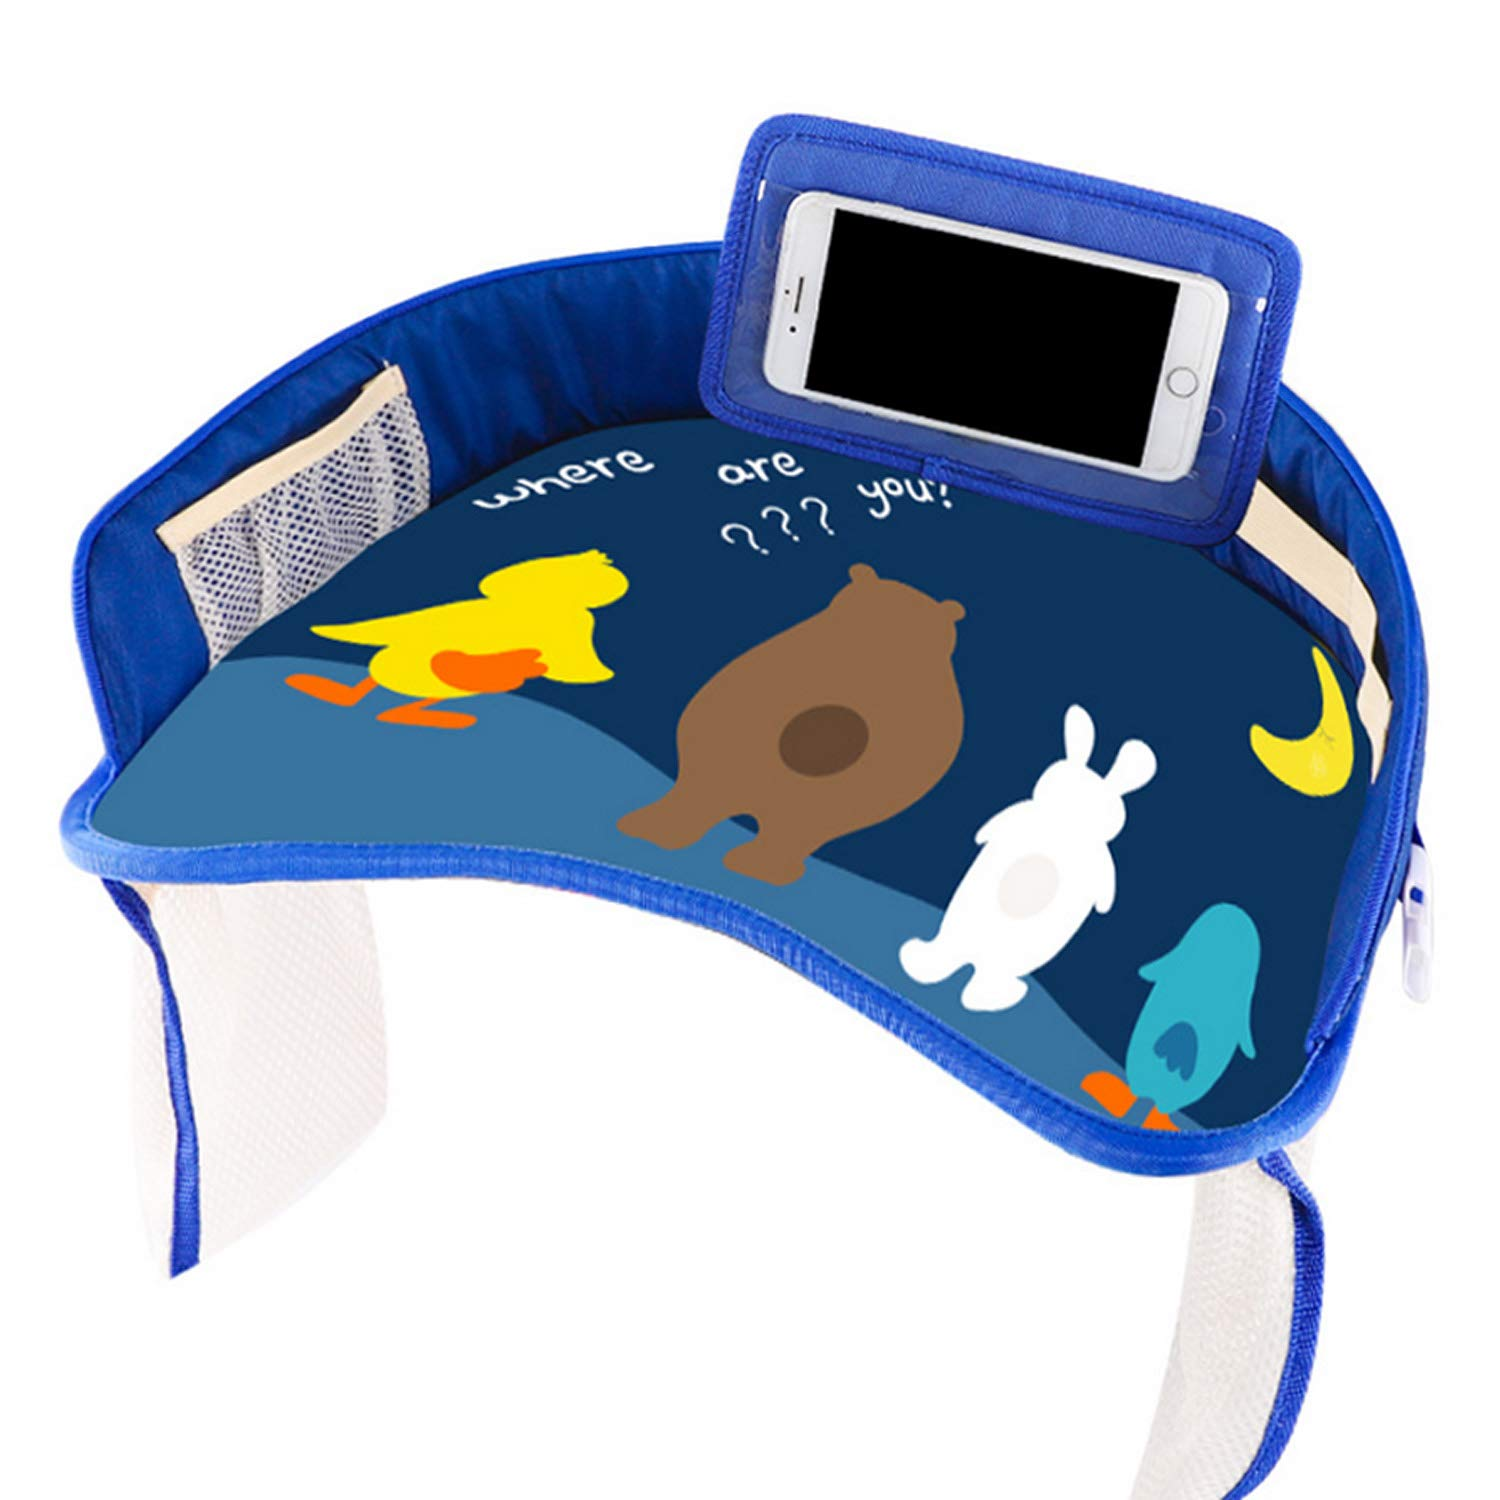 Cute Cartoon Waterproof Kids Children Travel Tray with Multi Storage Pockets for Auto Car Seats Booster Strollers High Chair Blue